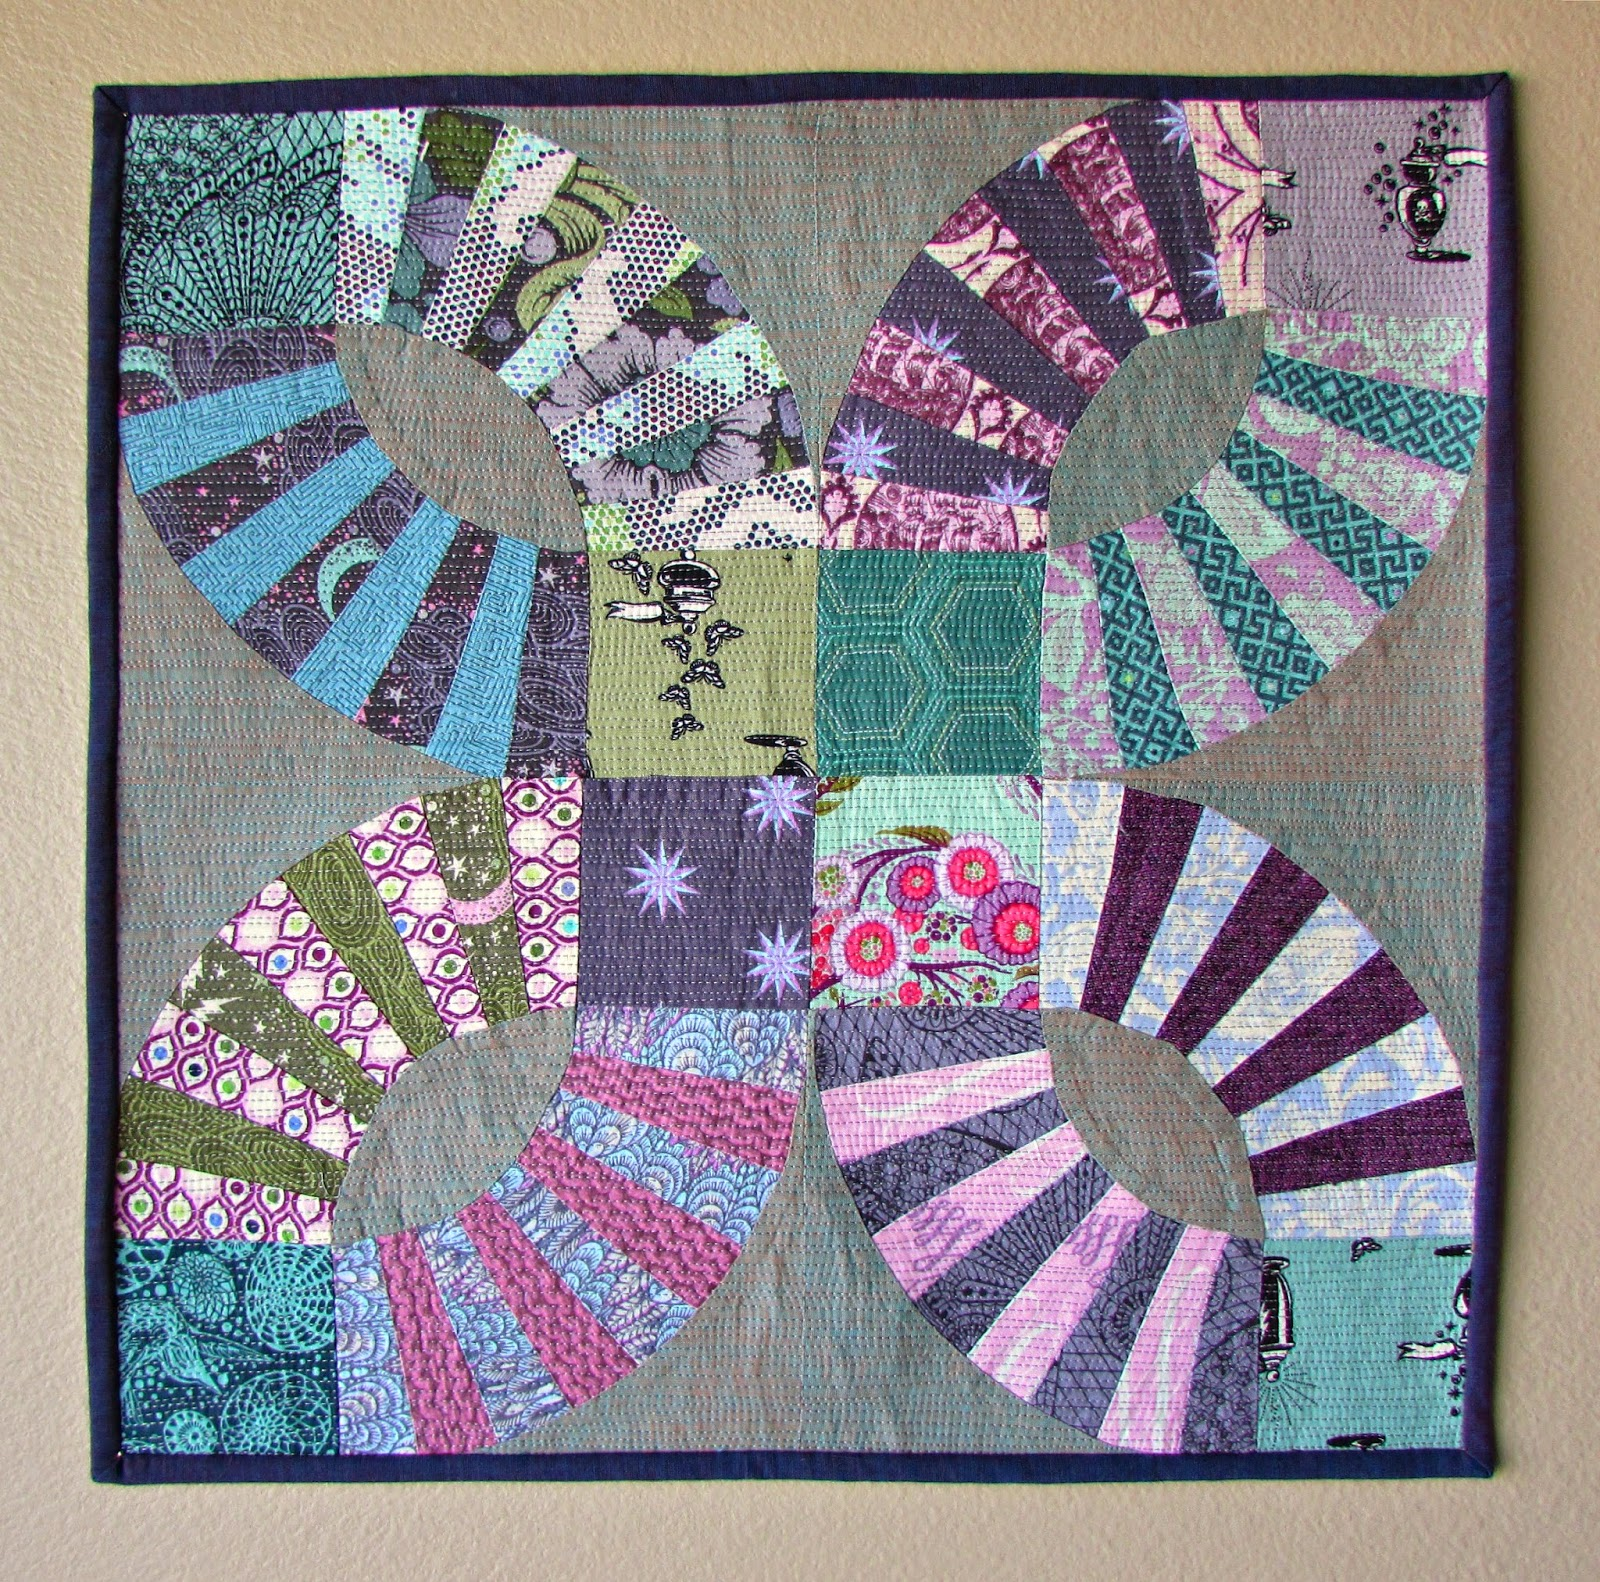 Double Wedding Ring Quilt Pattern: Quilt Inspiration: Wedding Ring Quilt Inspiration... And